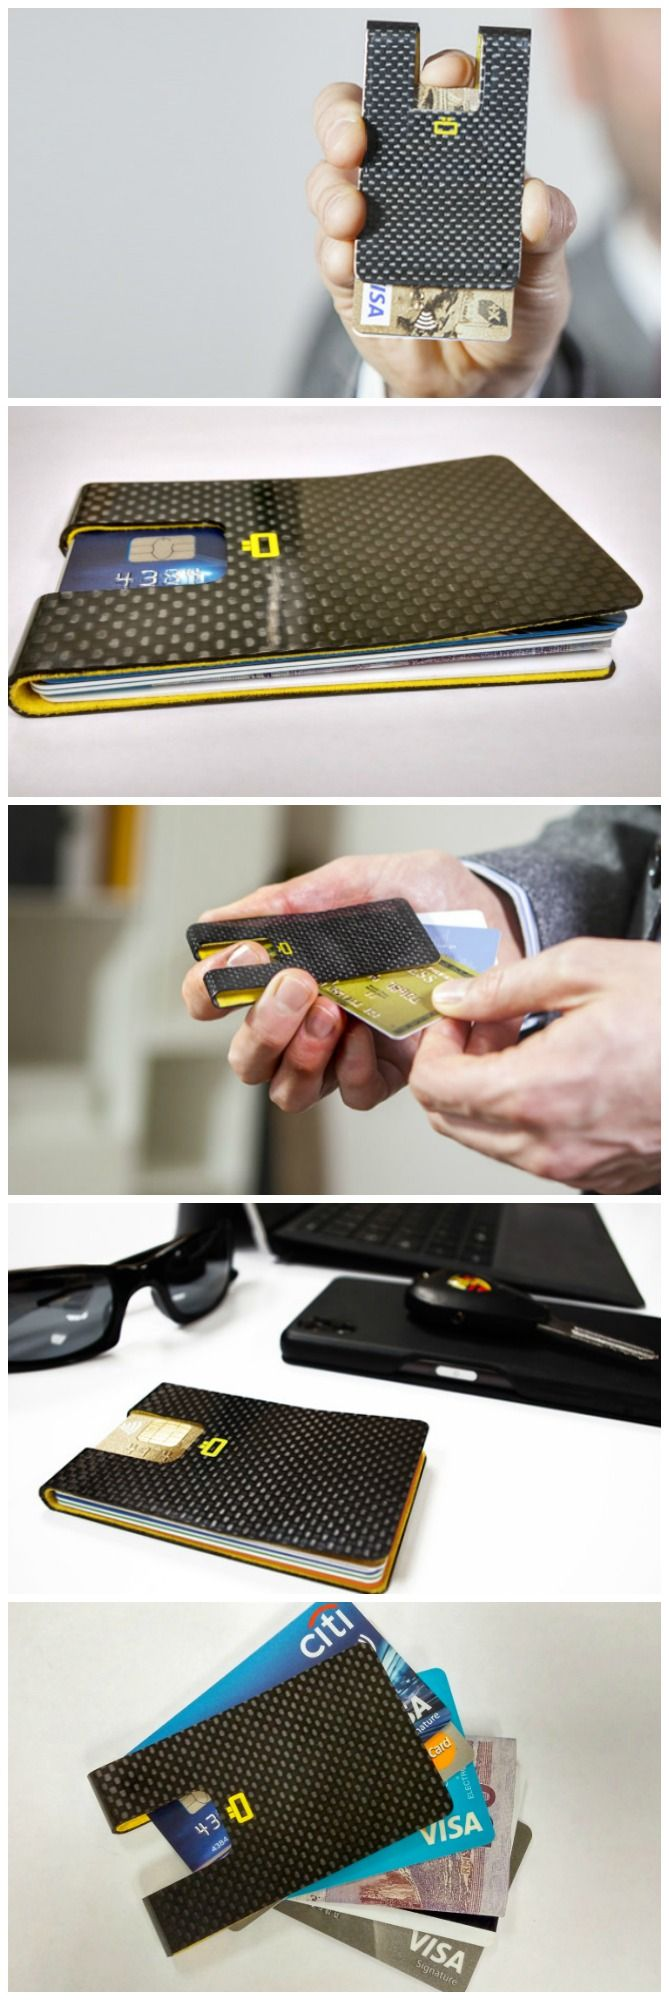 3C Smart Wallet by Ögon Designs - Free Your Pocket with the slimmest wallet ever. Durable luxury carbon fiber, RFID safe.